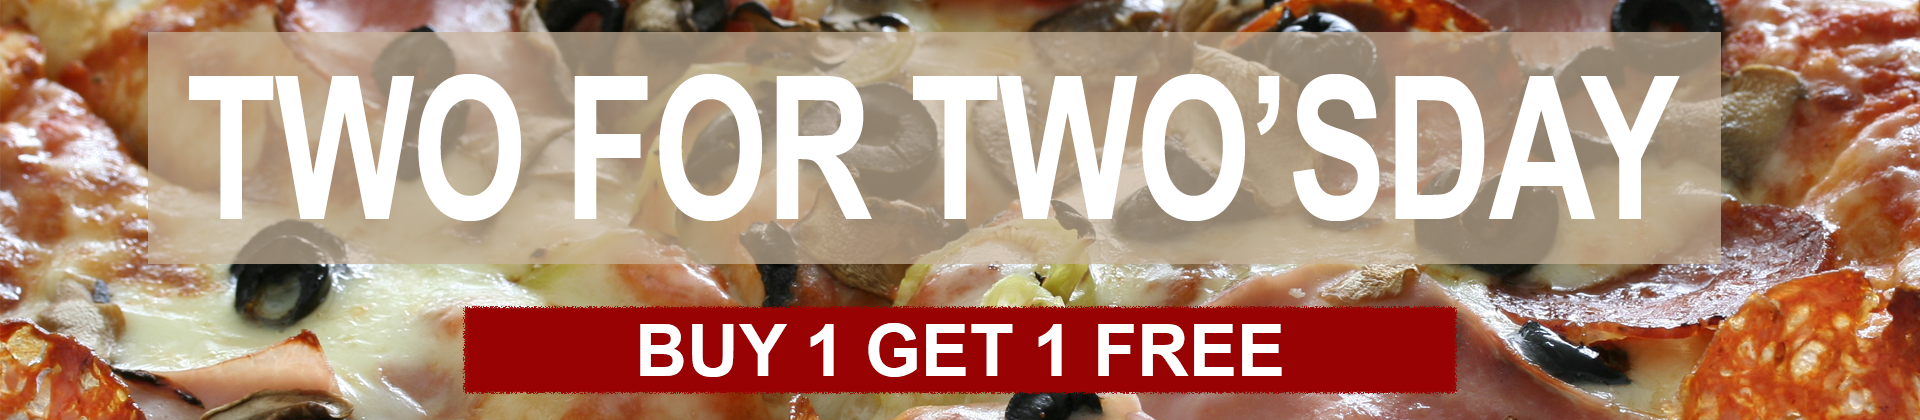 Two for Two'sday Offer